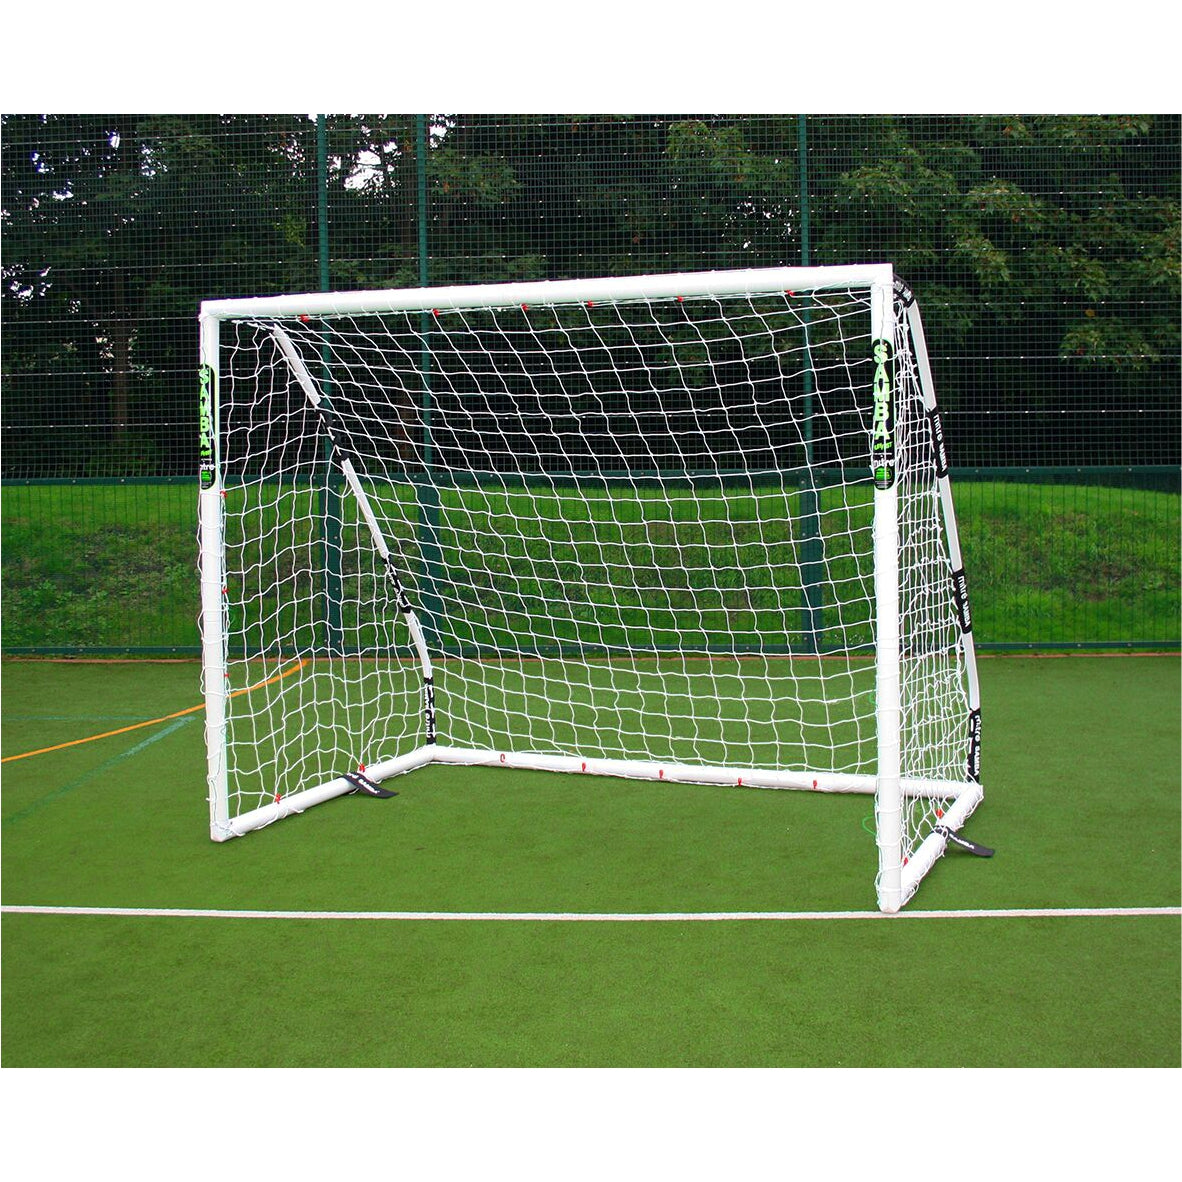 Samba PlayFast Match Goal 8' x 6'